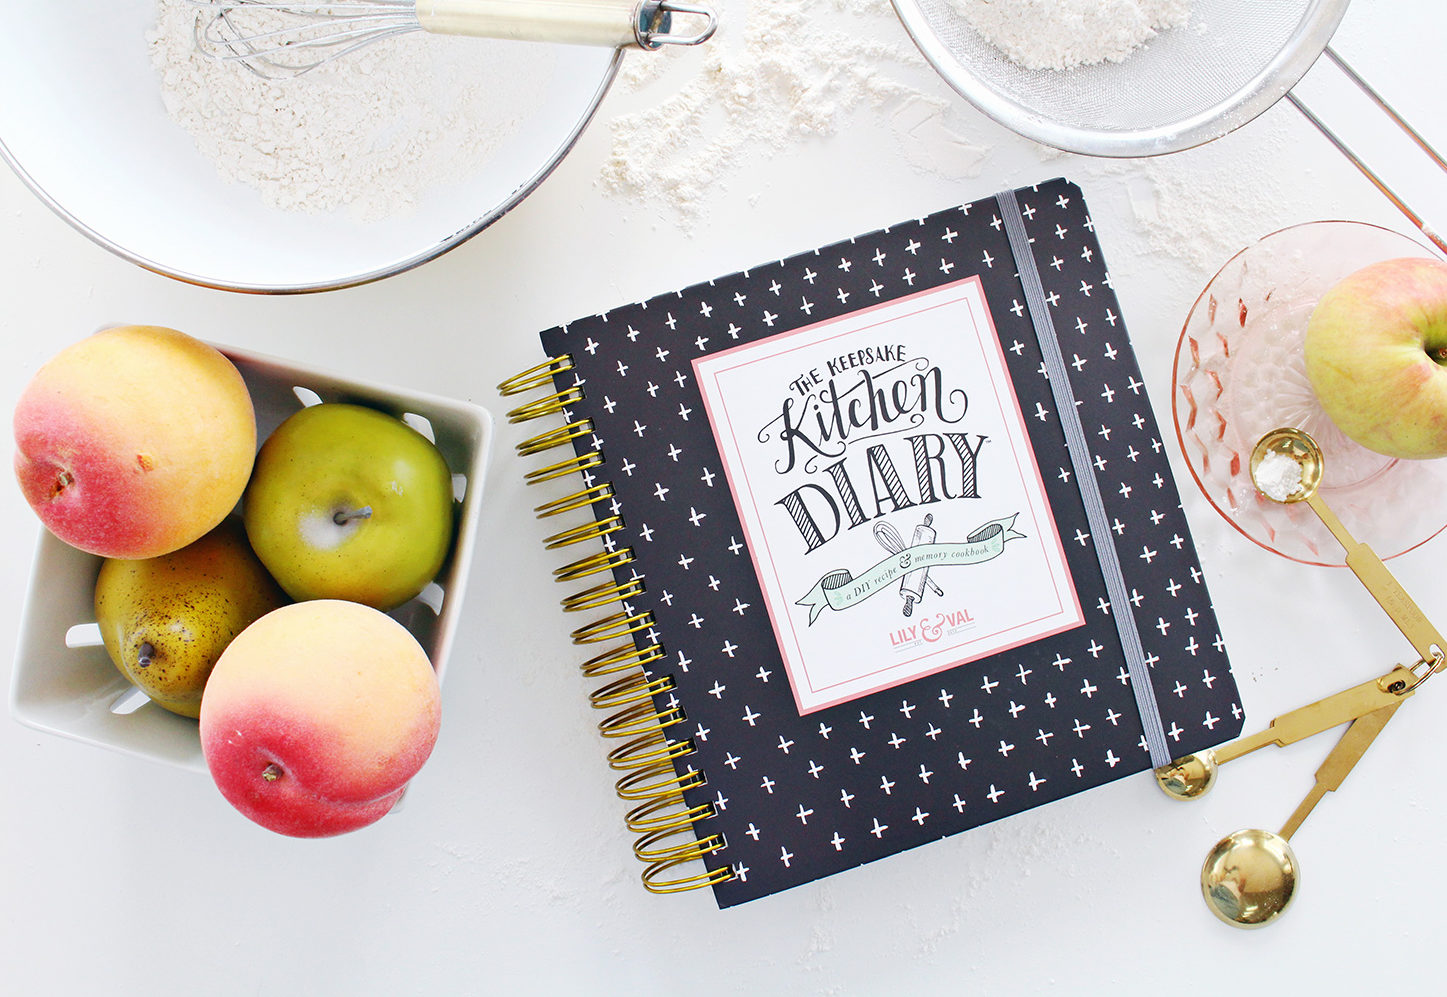 The Keepsake Kitchen Diary is a family recipe cookbook and memory keeper. Recipe Journal, recipe diary, family recipes